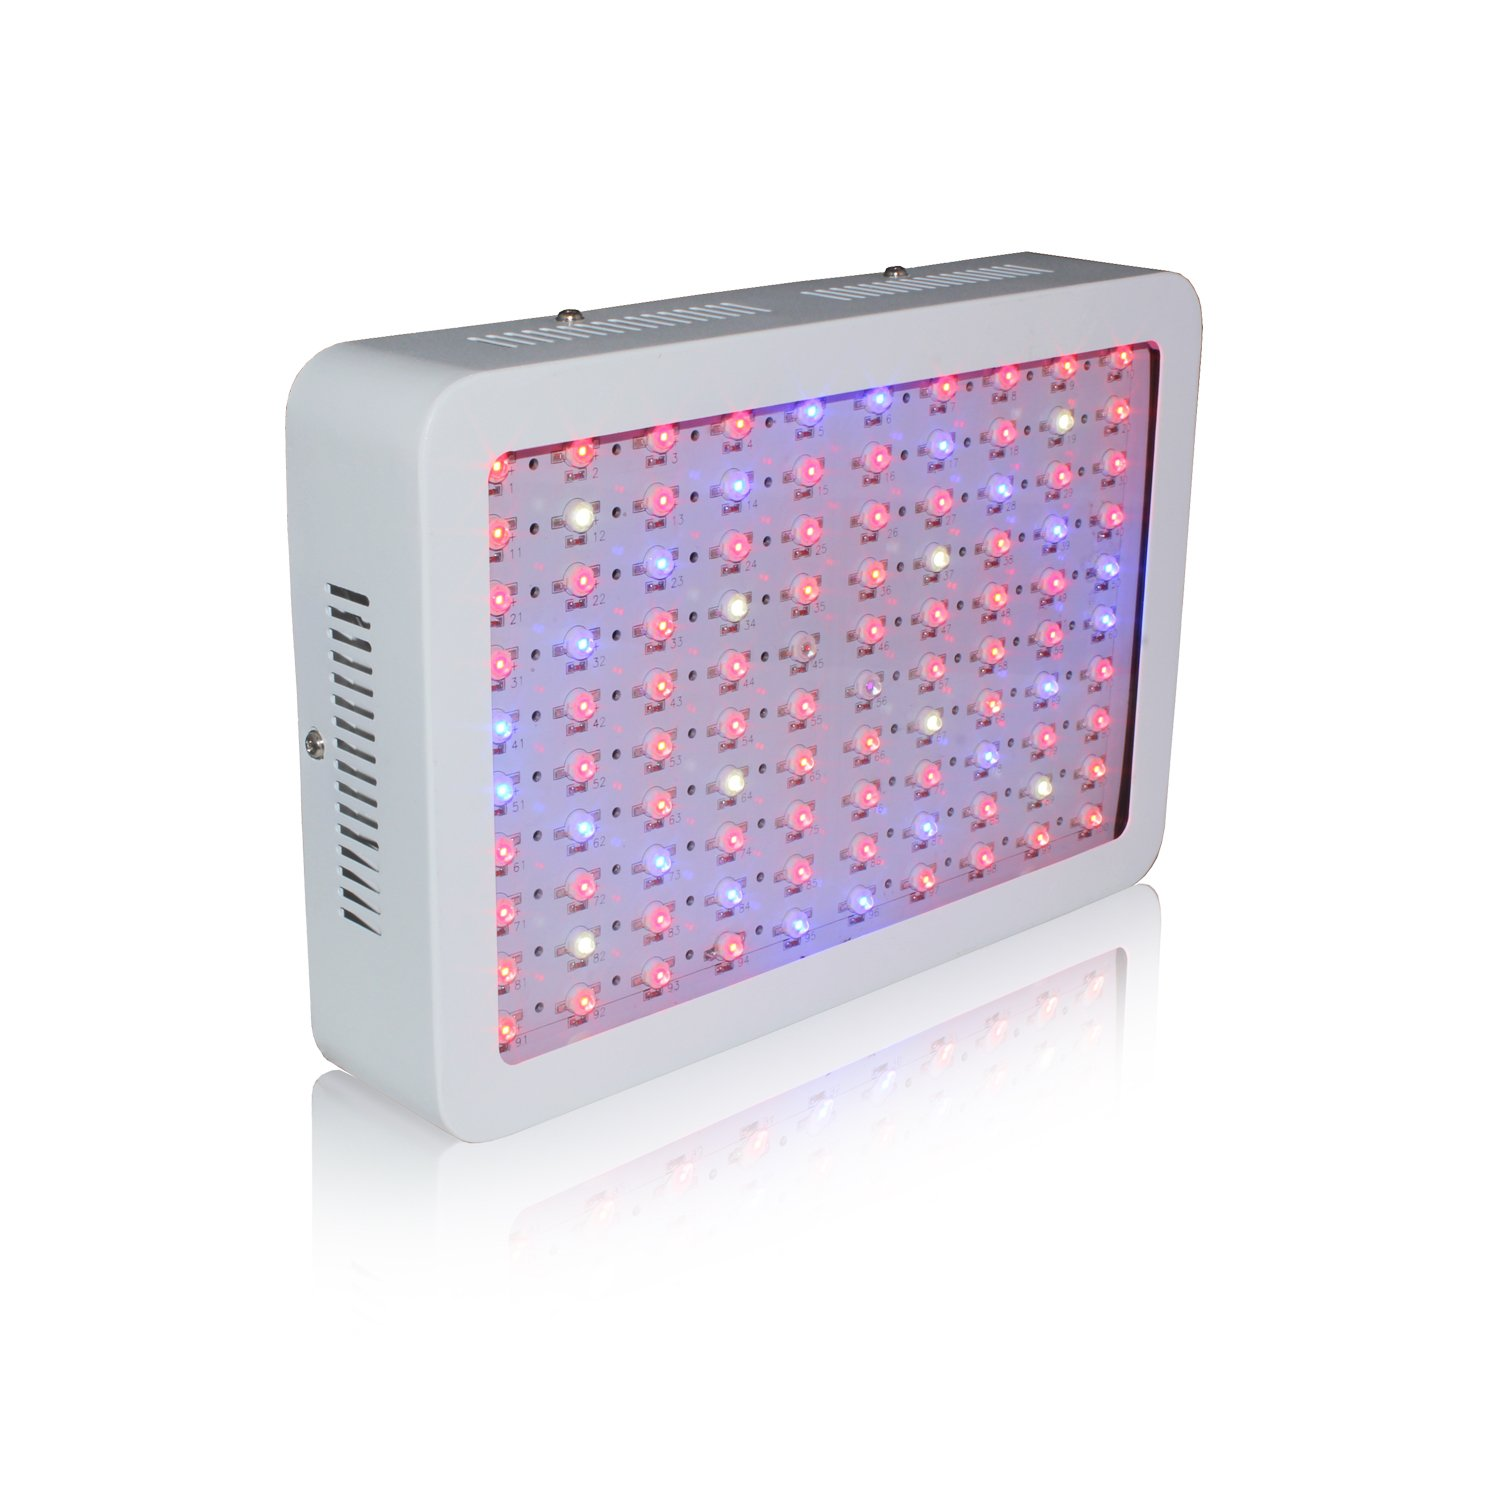 RYSA LIGHT LED Indoor Grow Light 1000W Full Spectrum Double Chips Growing Lamps with UV IR for Garden Plants Veg Flower Hydroponic Greenhouse by RYSA LIGHT (Image #5)